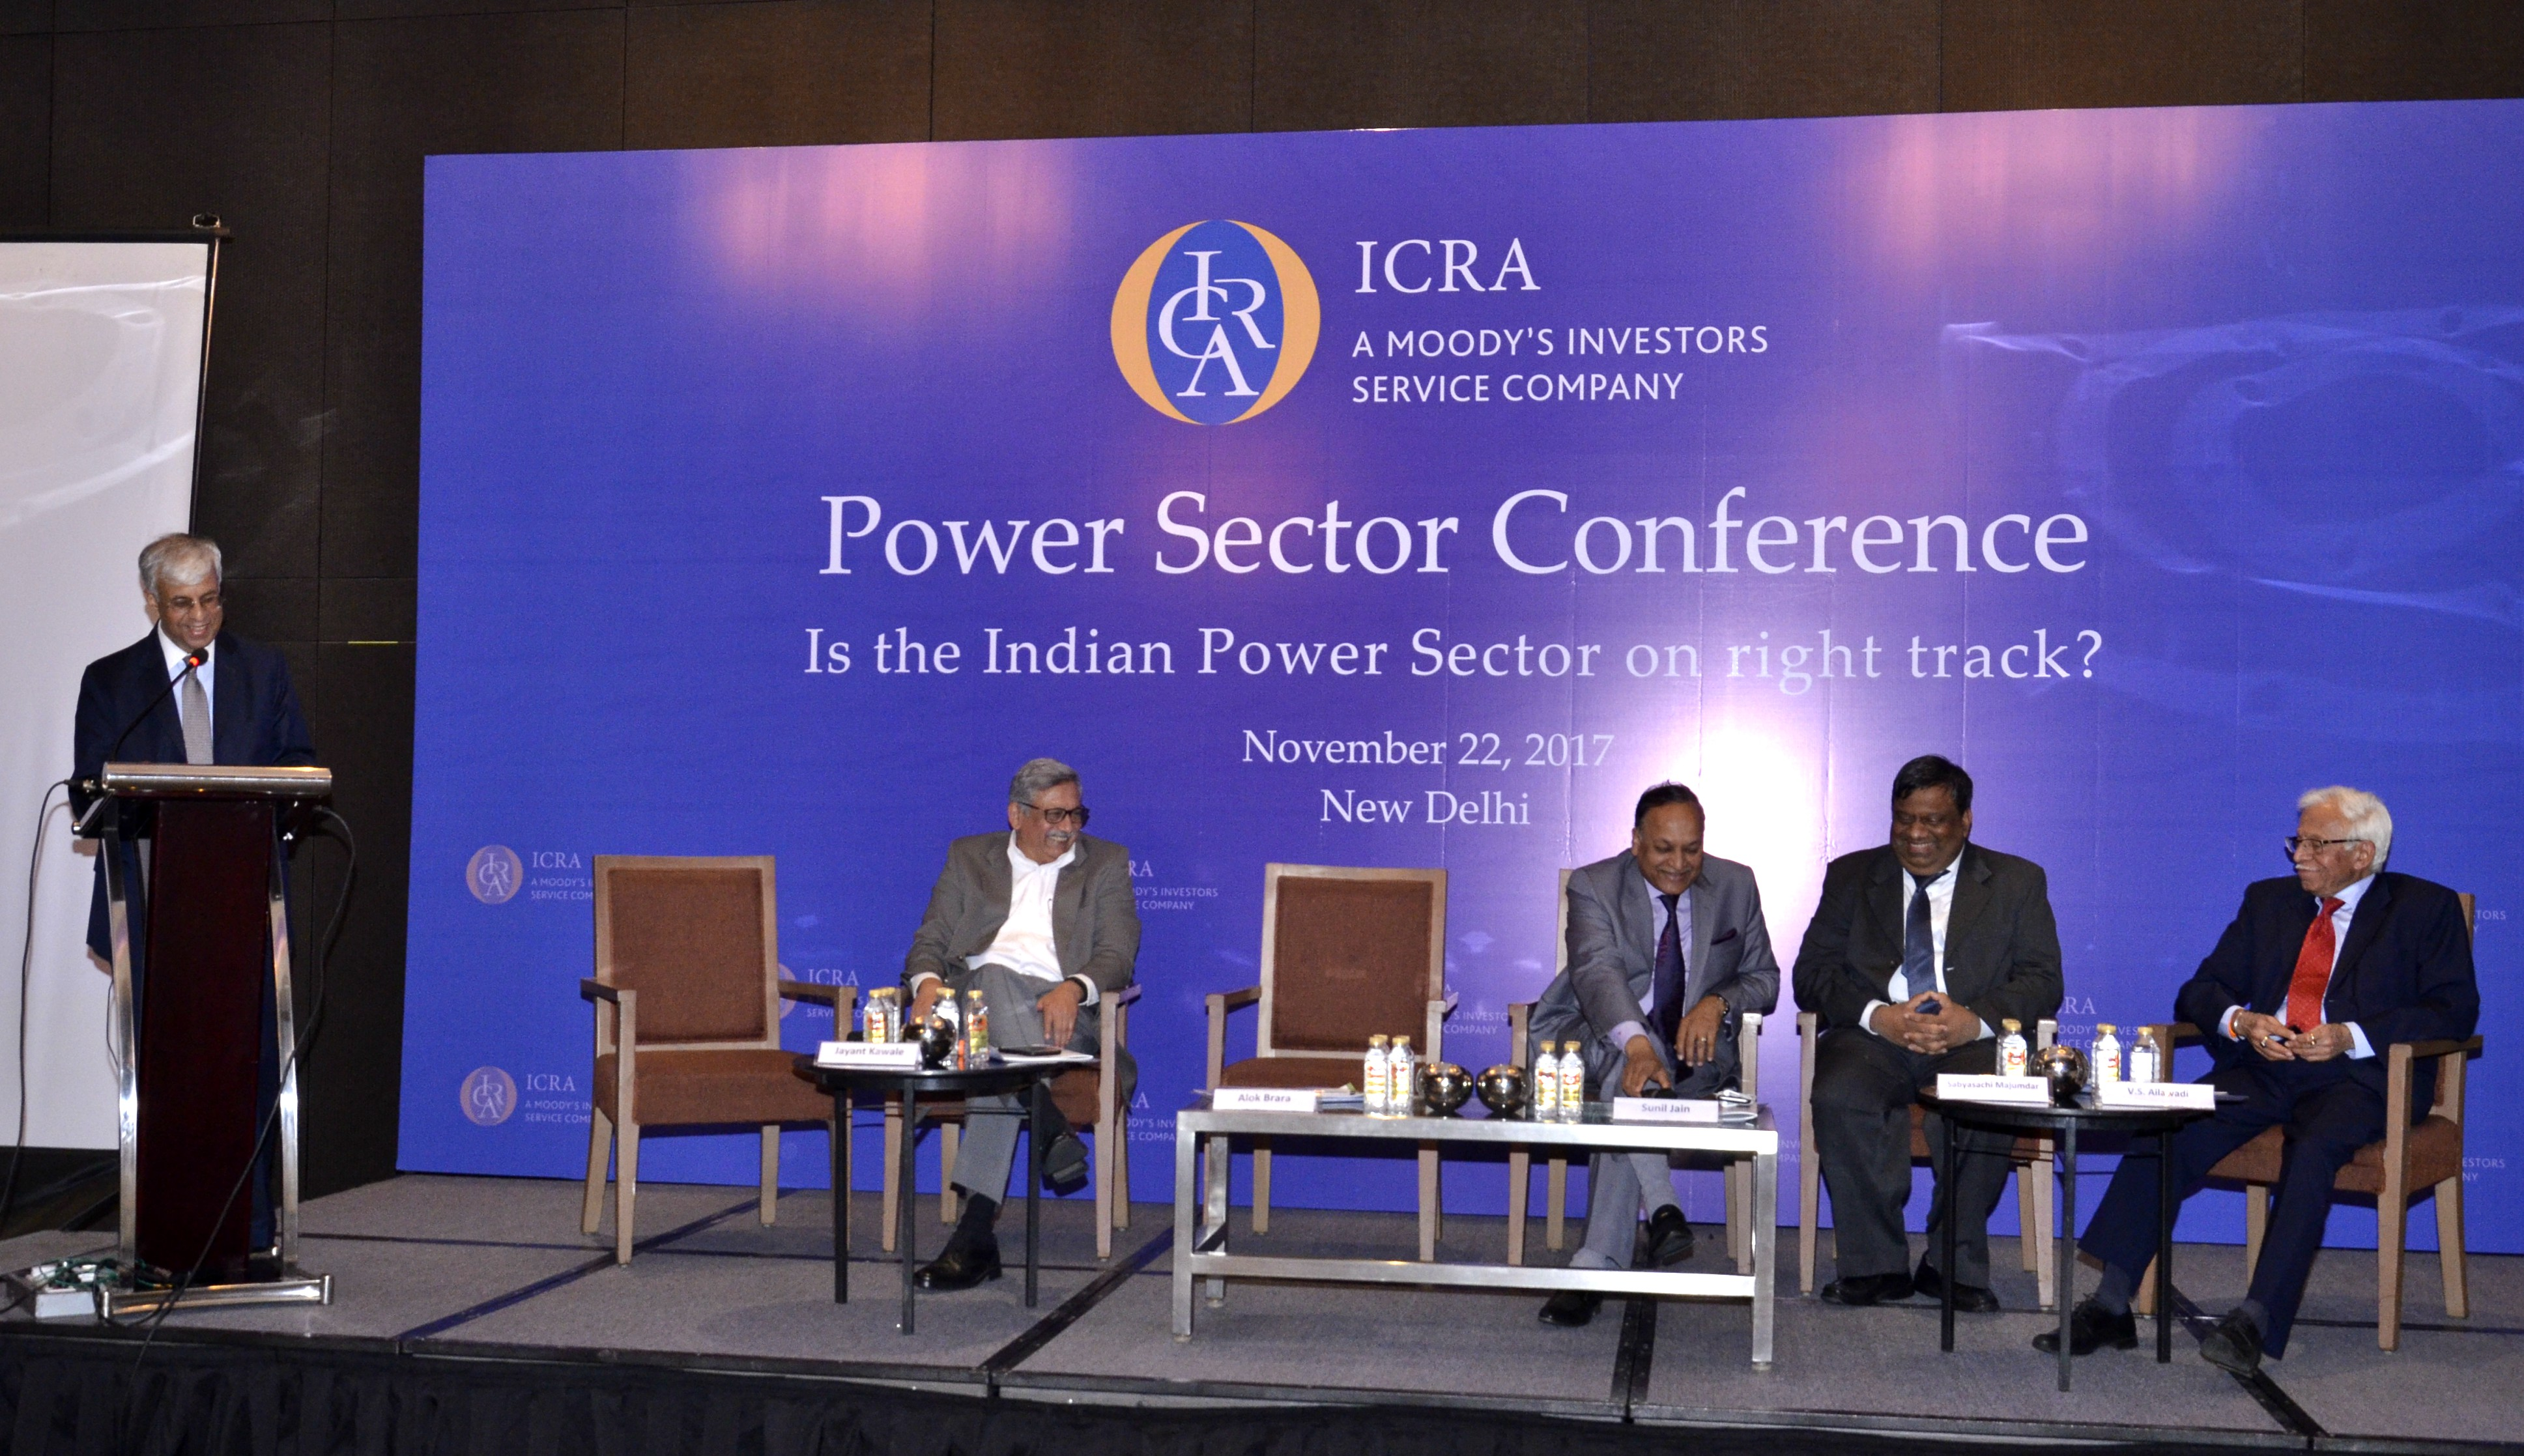 Mr. Alok K. Brara, CEO and Publisher, India Infrastructure Publishing (Moderator) introducing the panellists